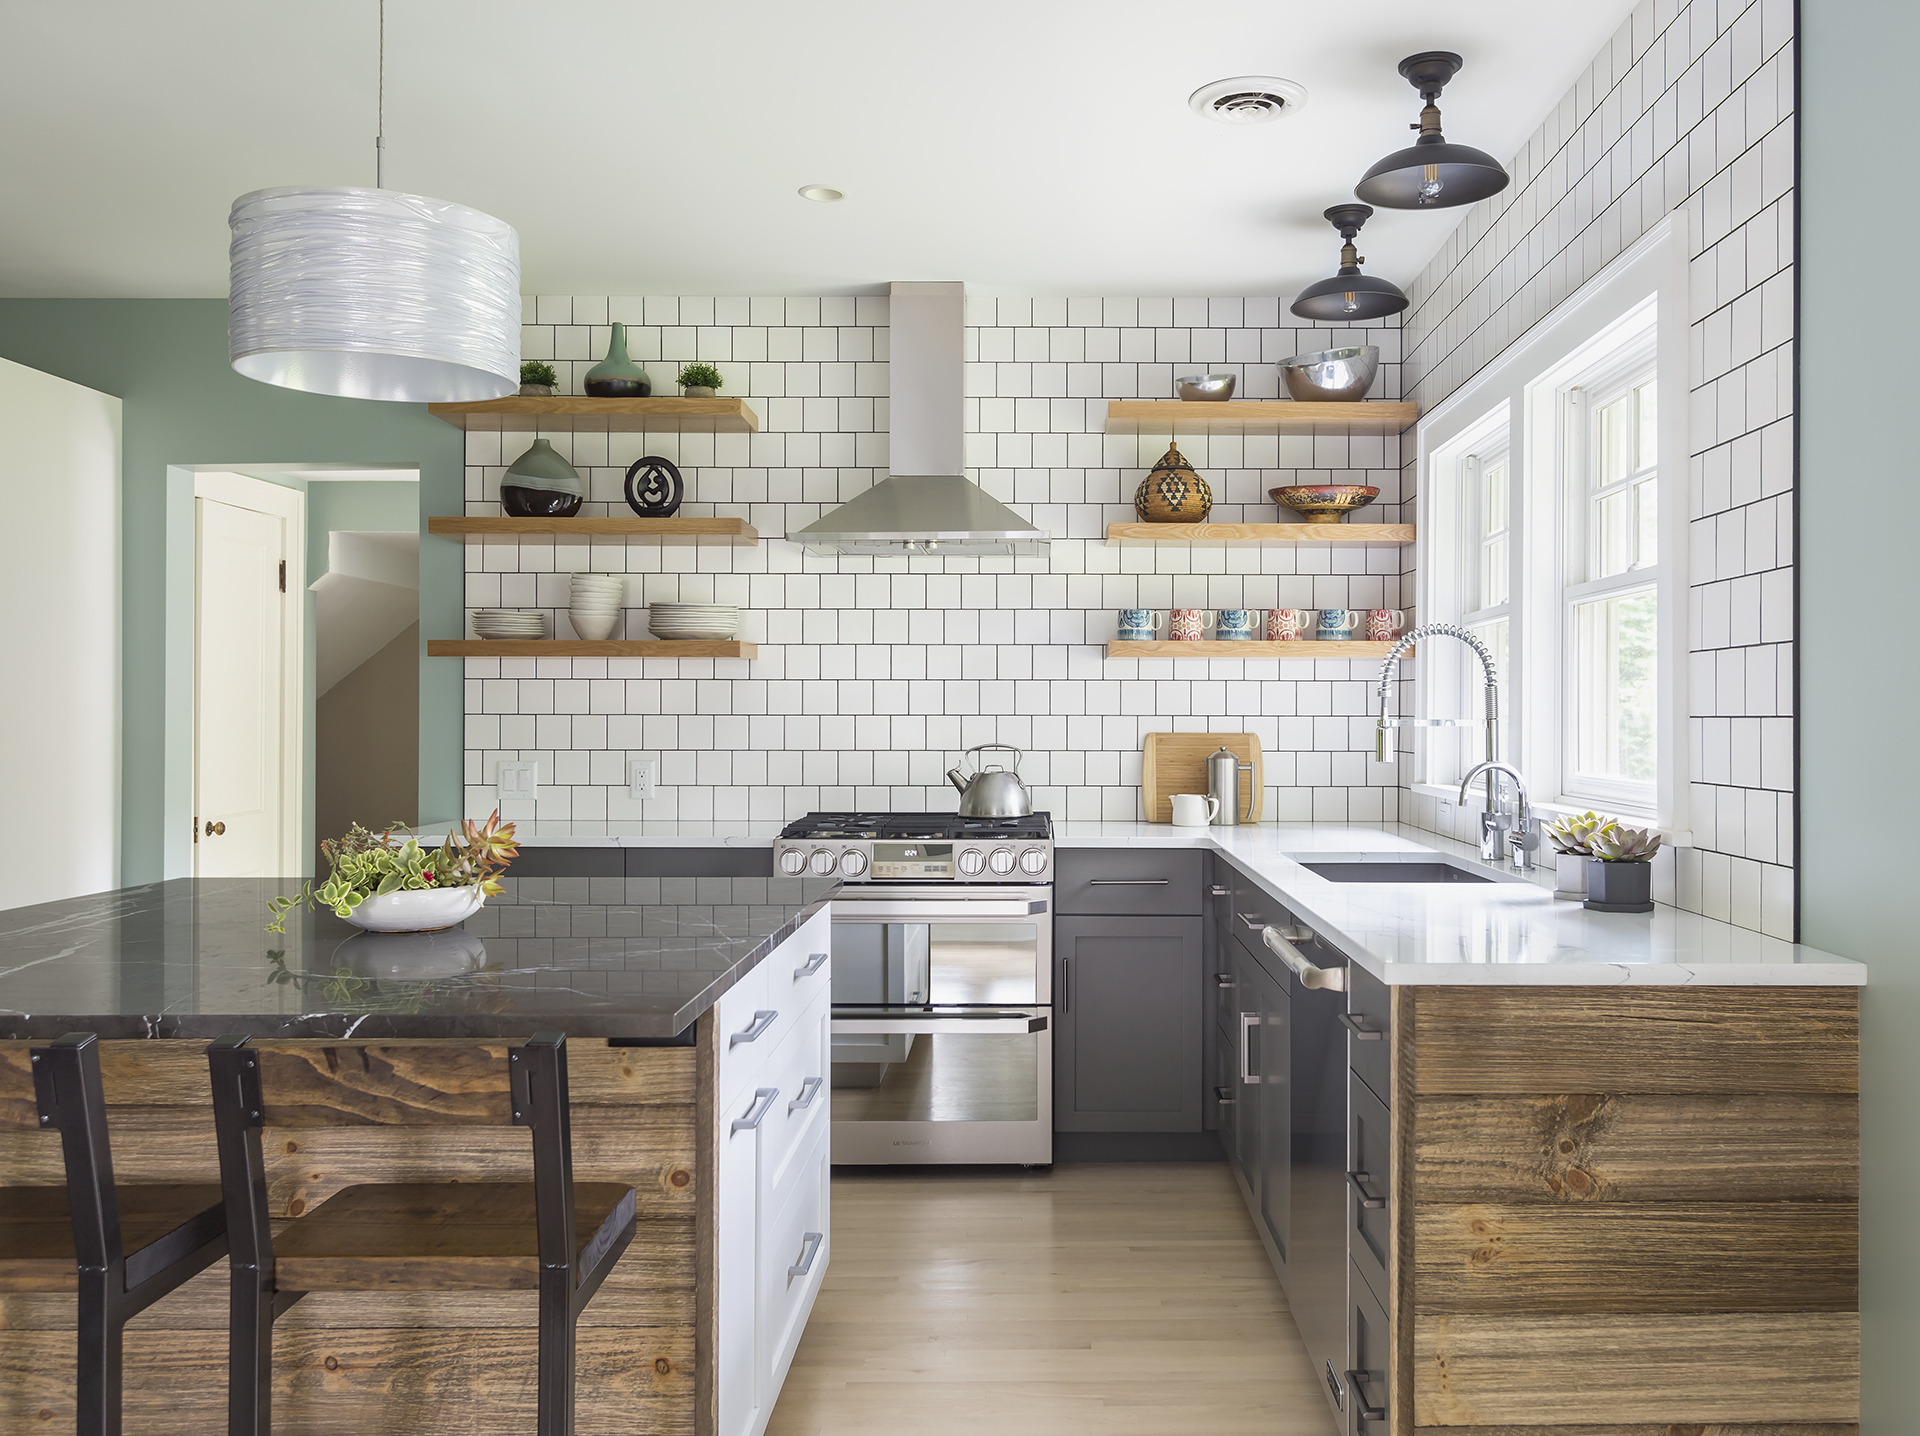 Kitchen_Wall_2018_06_11.jpg